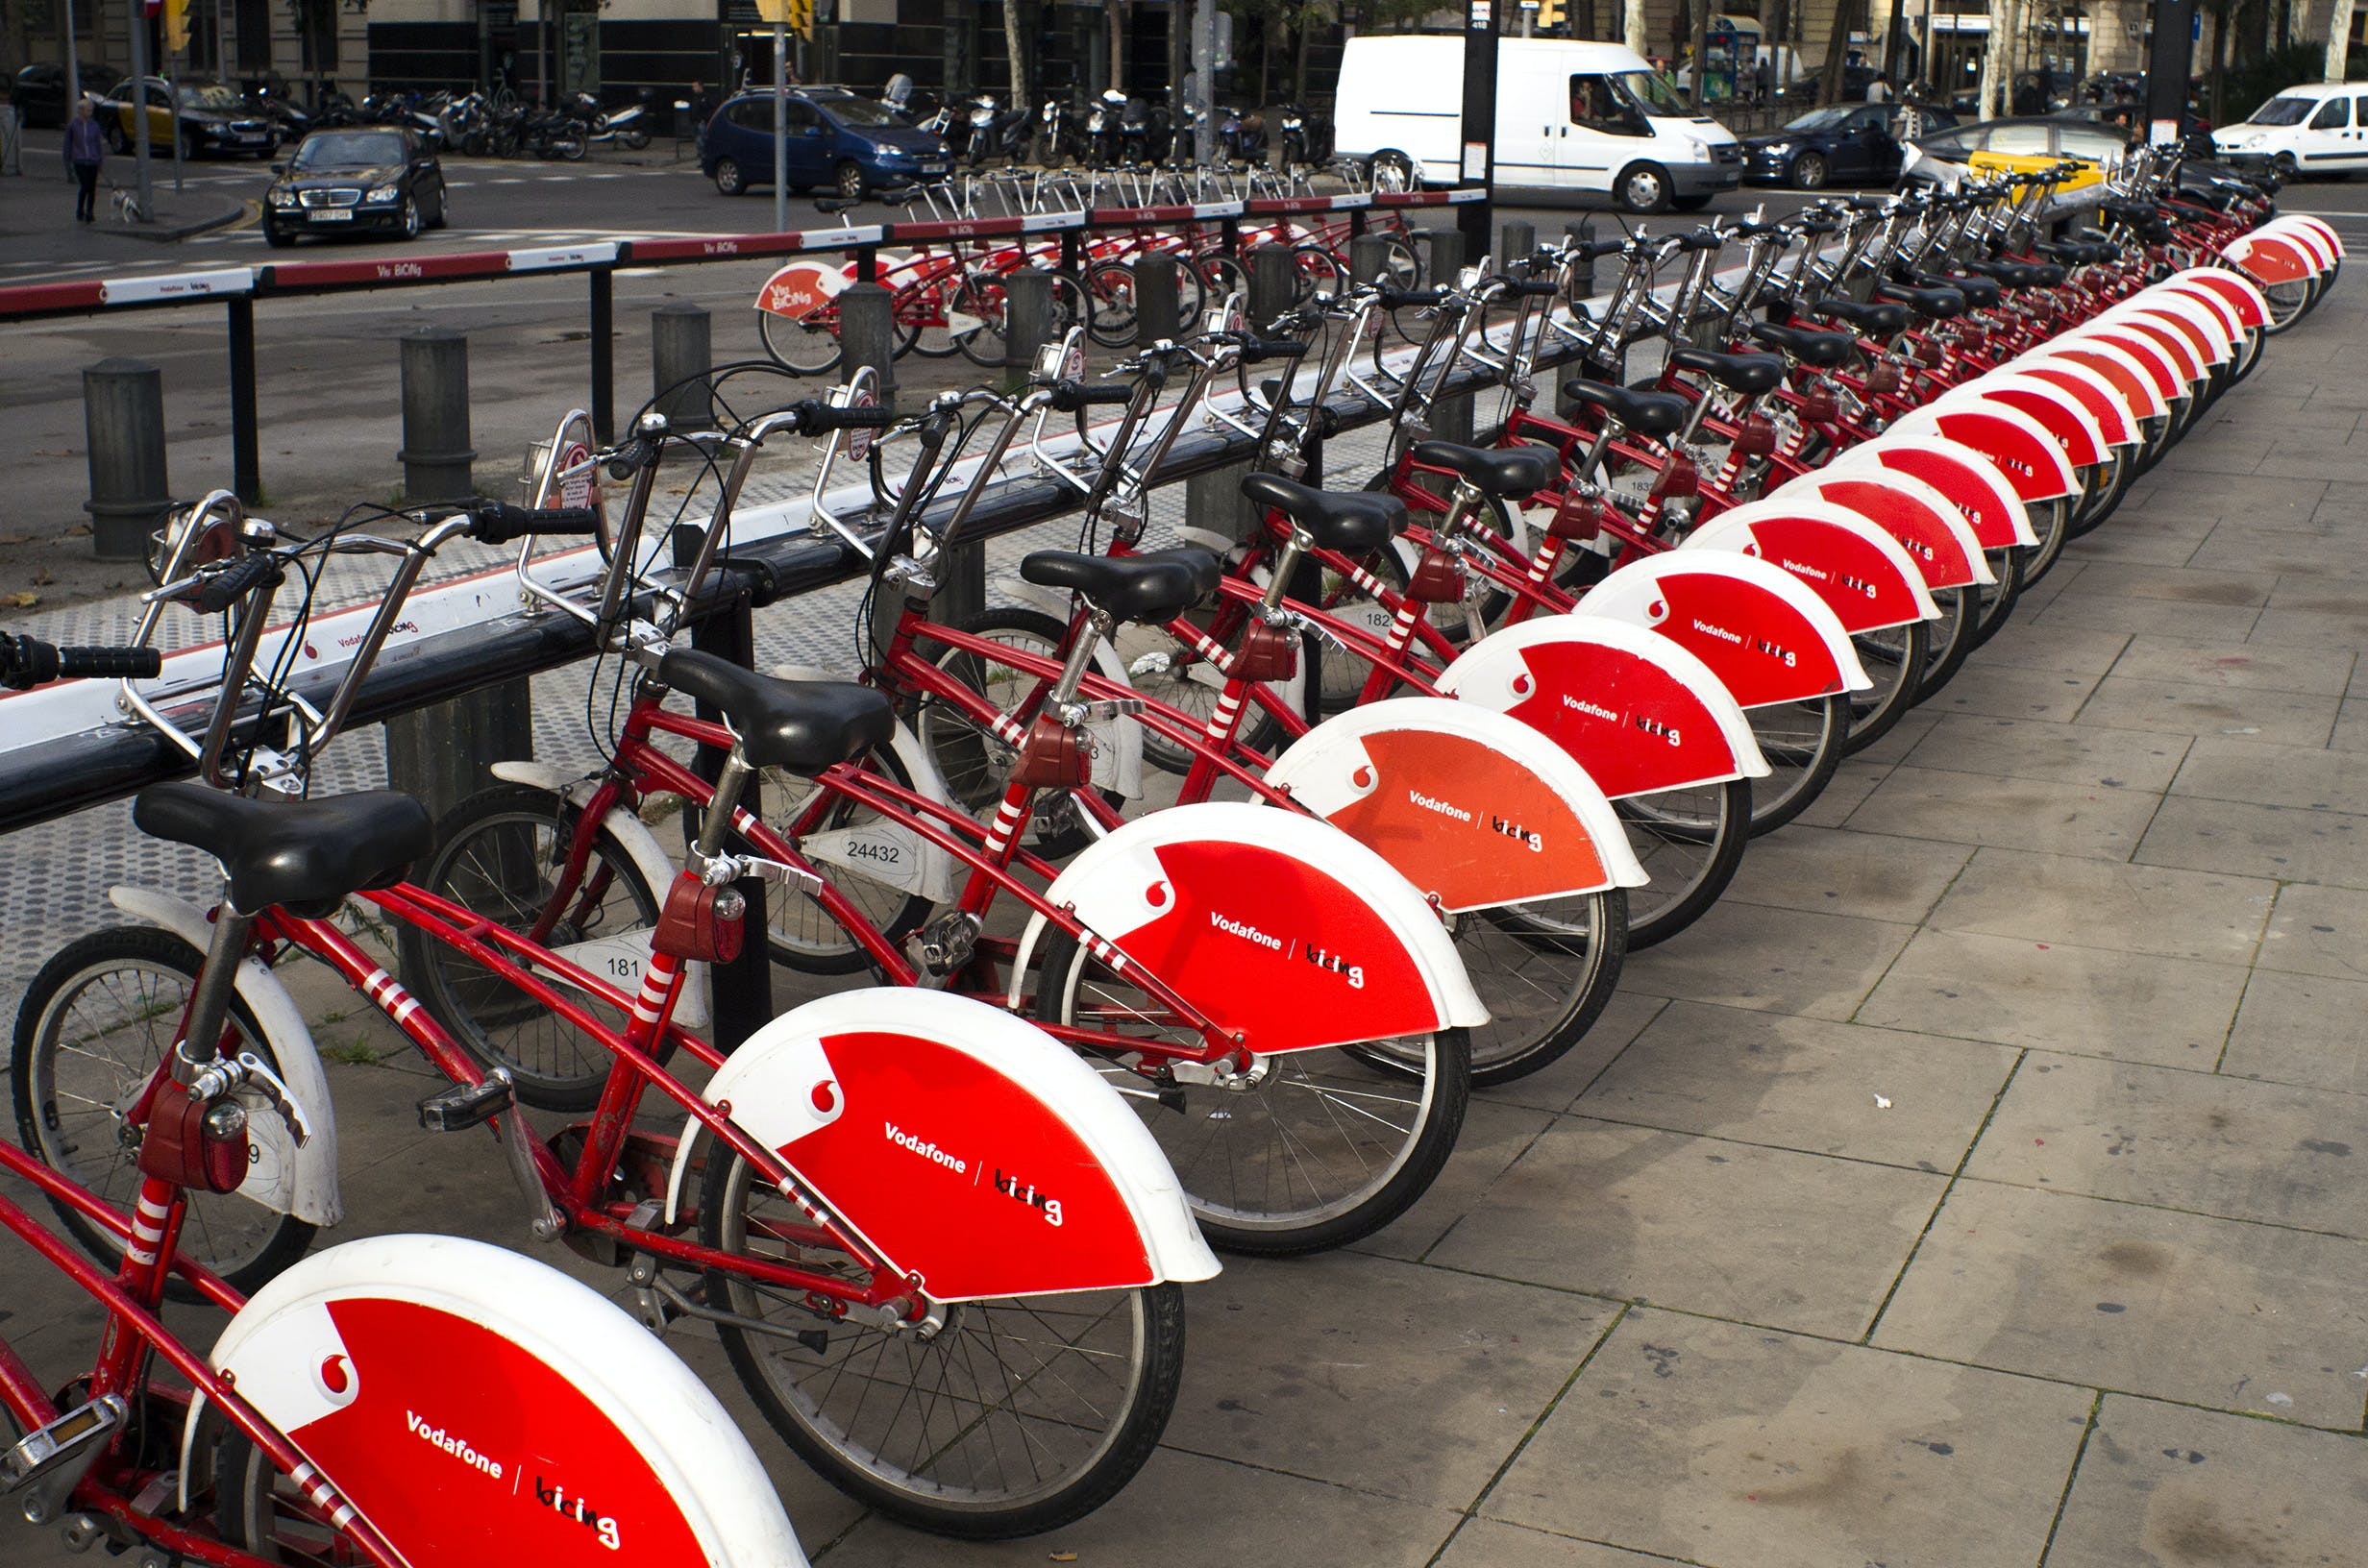 Parked Red and White Bicycles